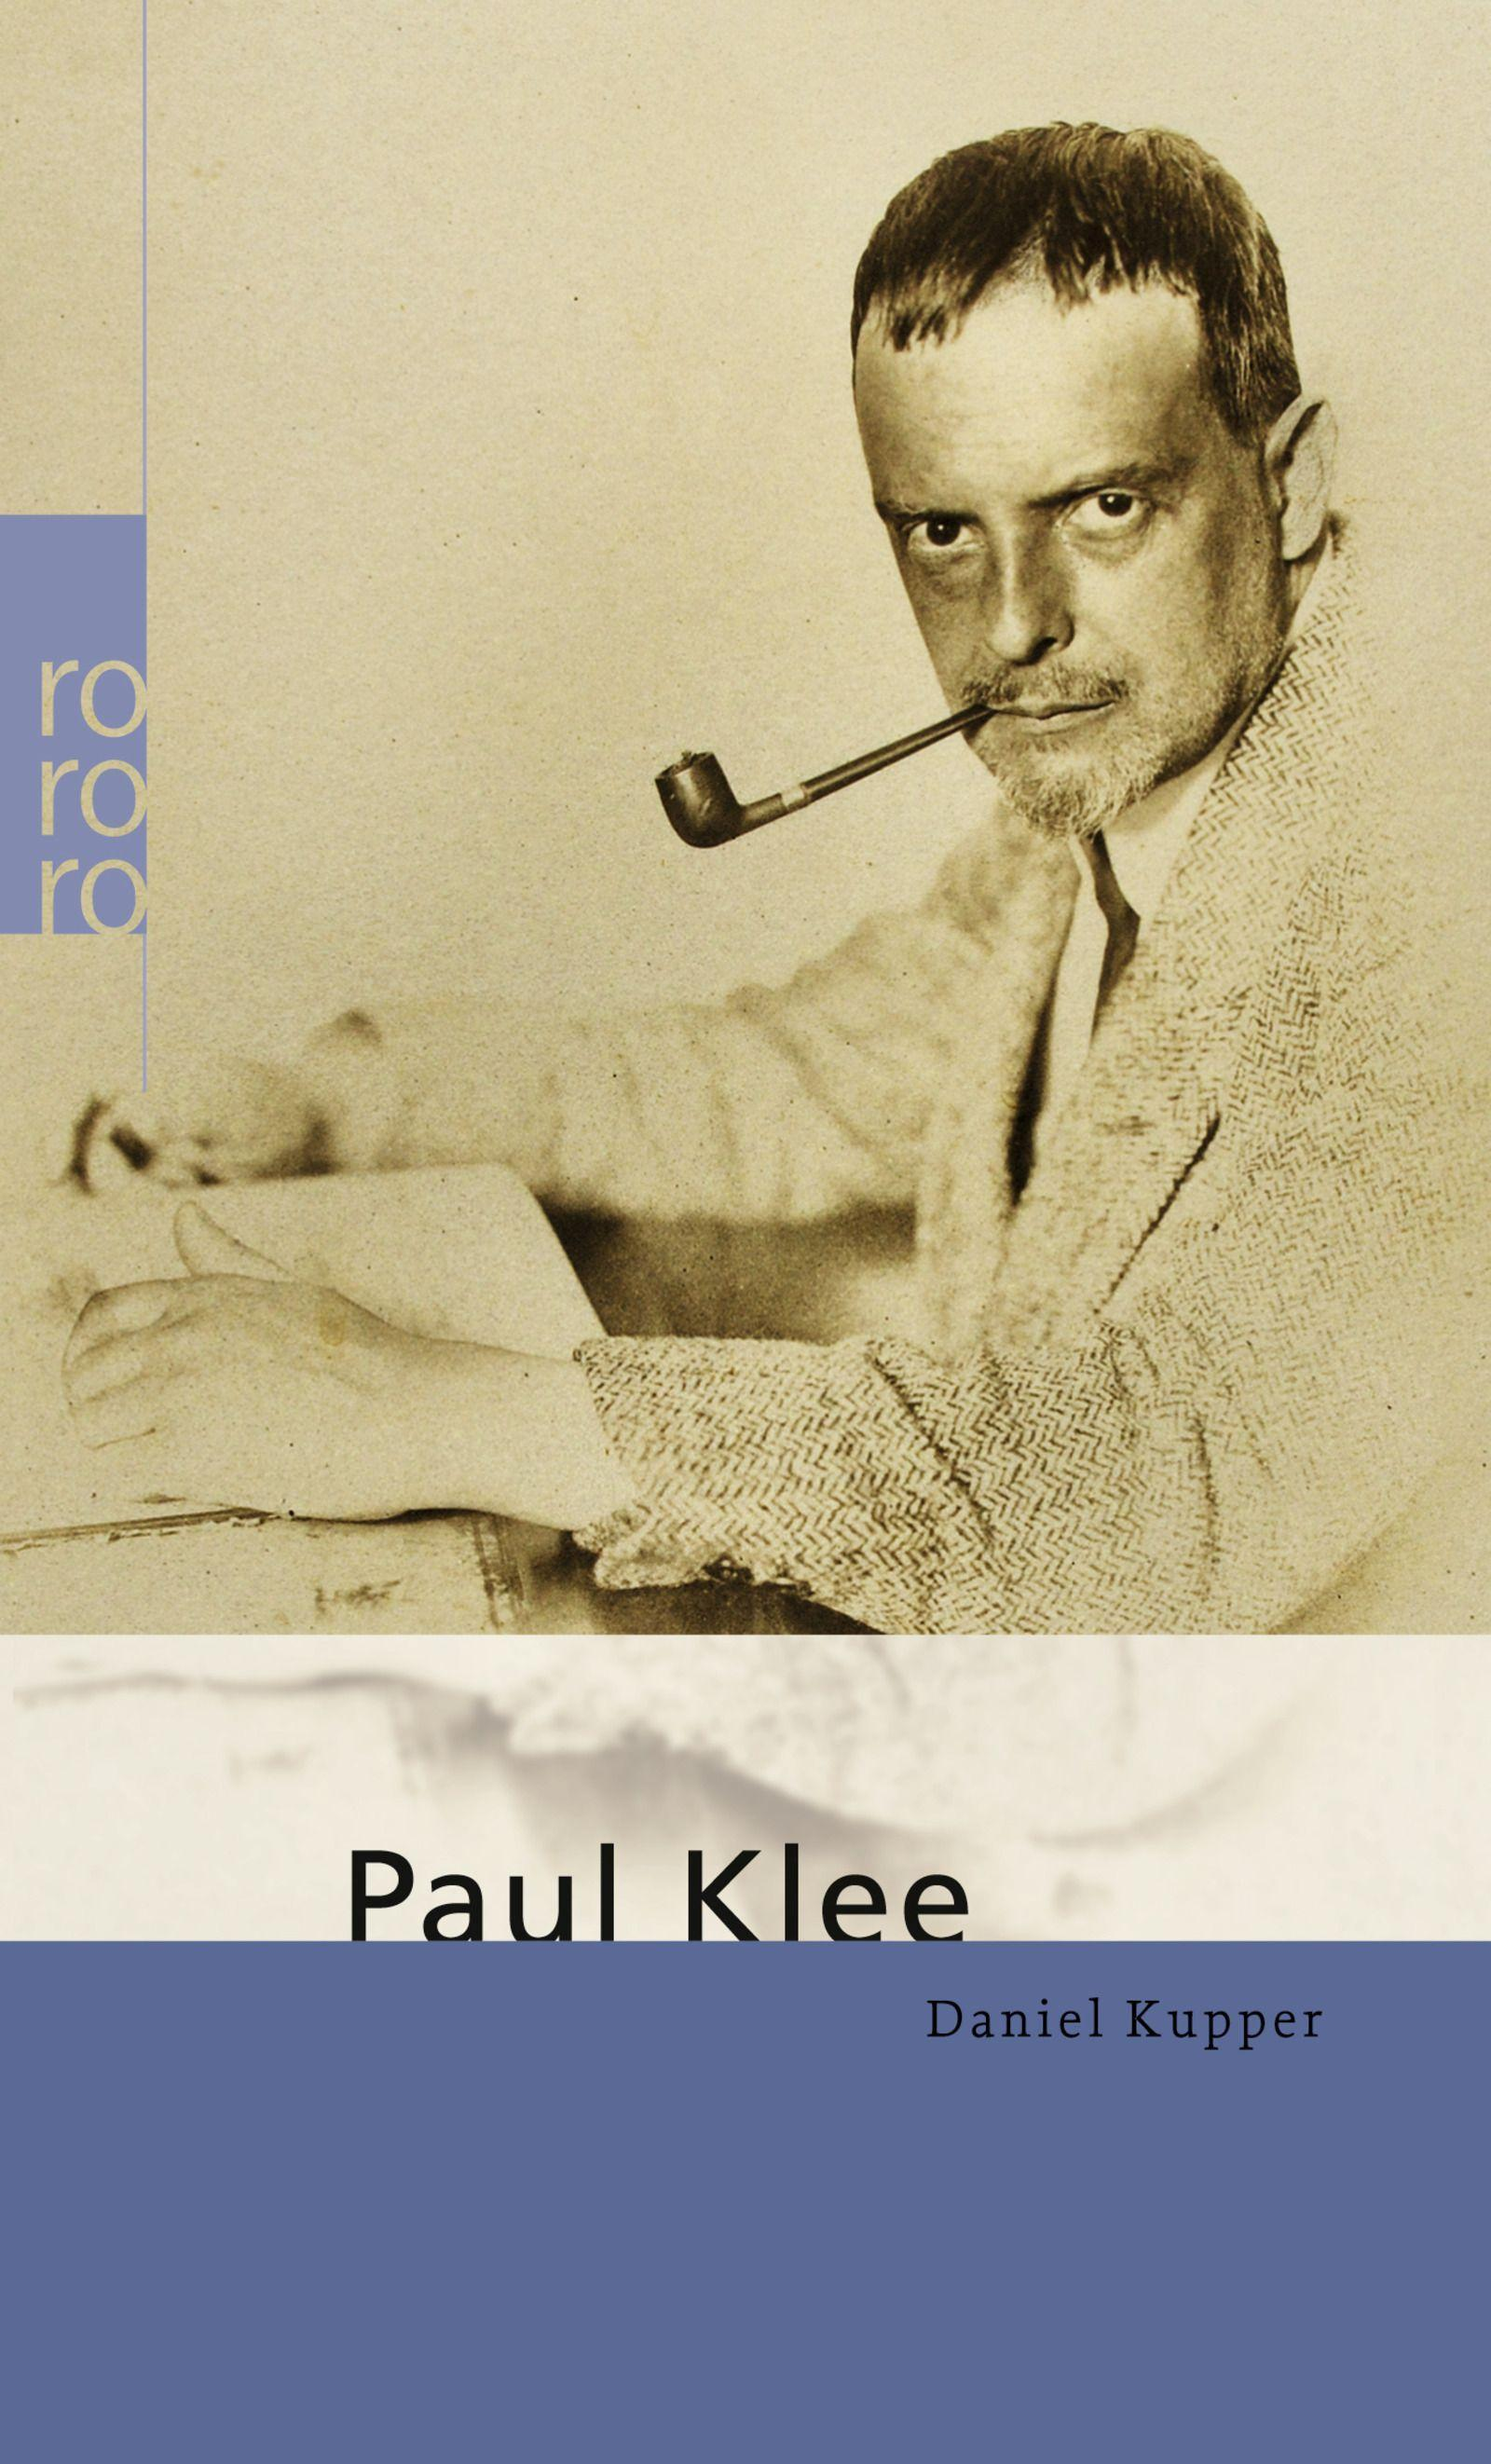 Paul Klee - Daniel Kupper